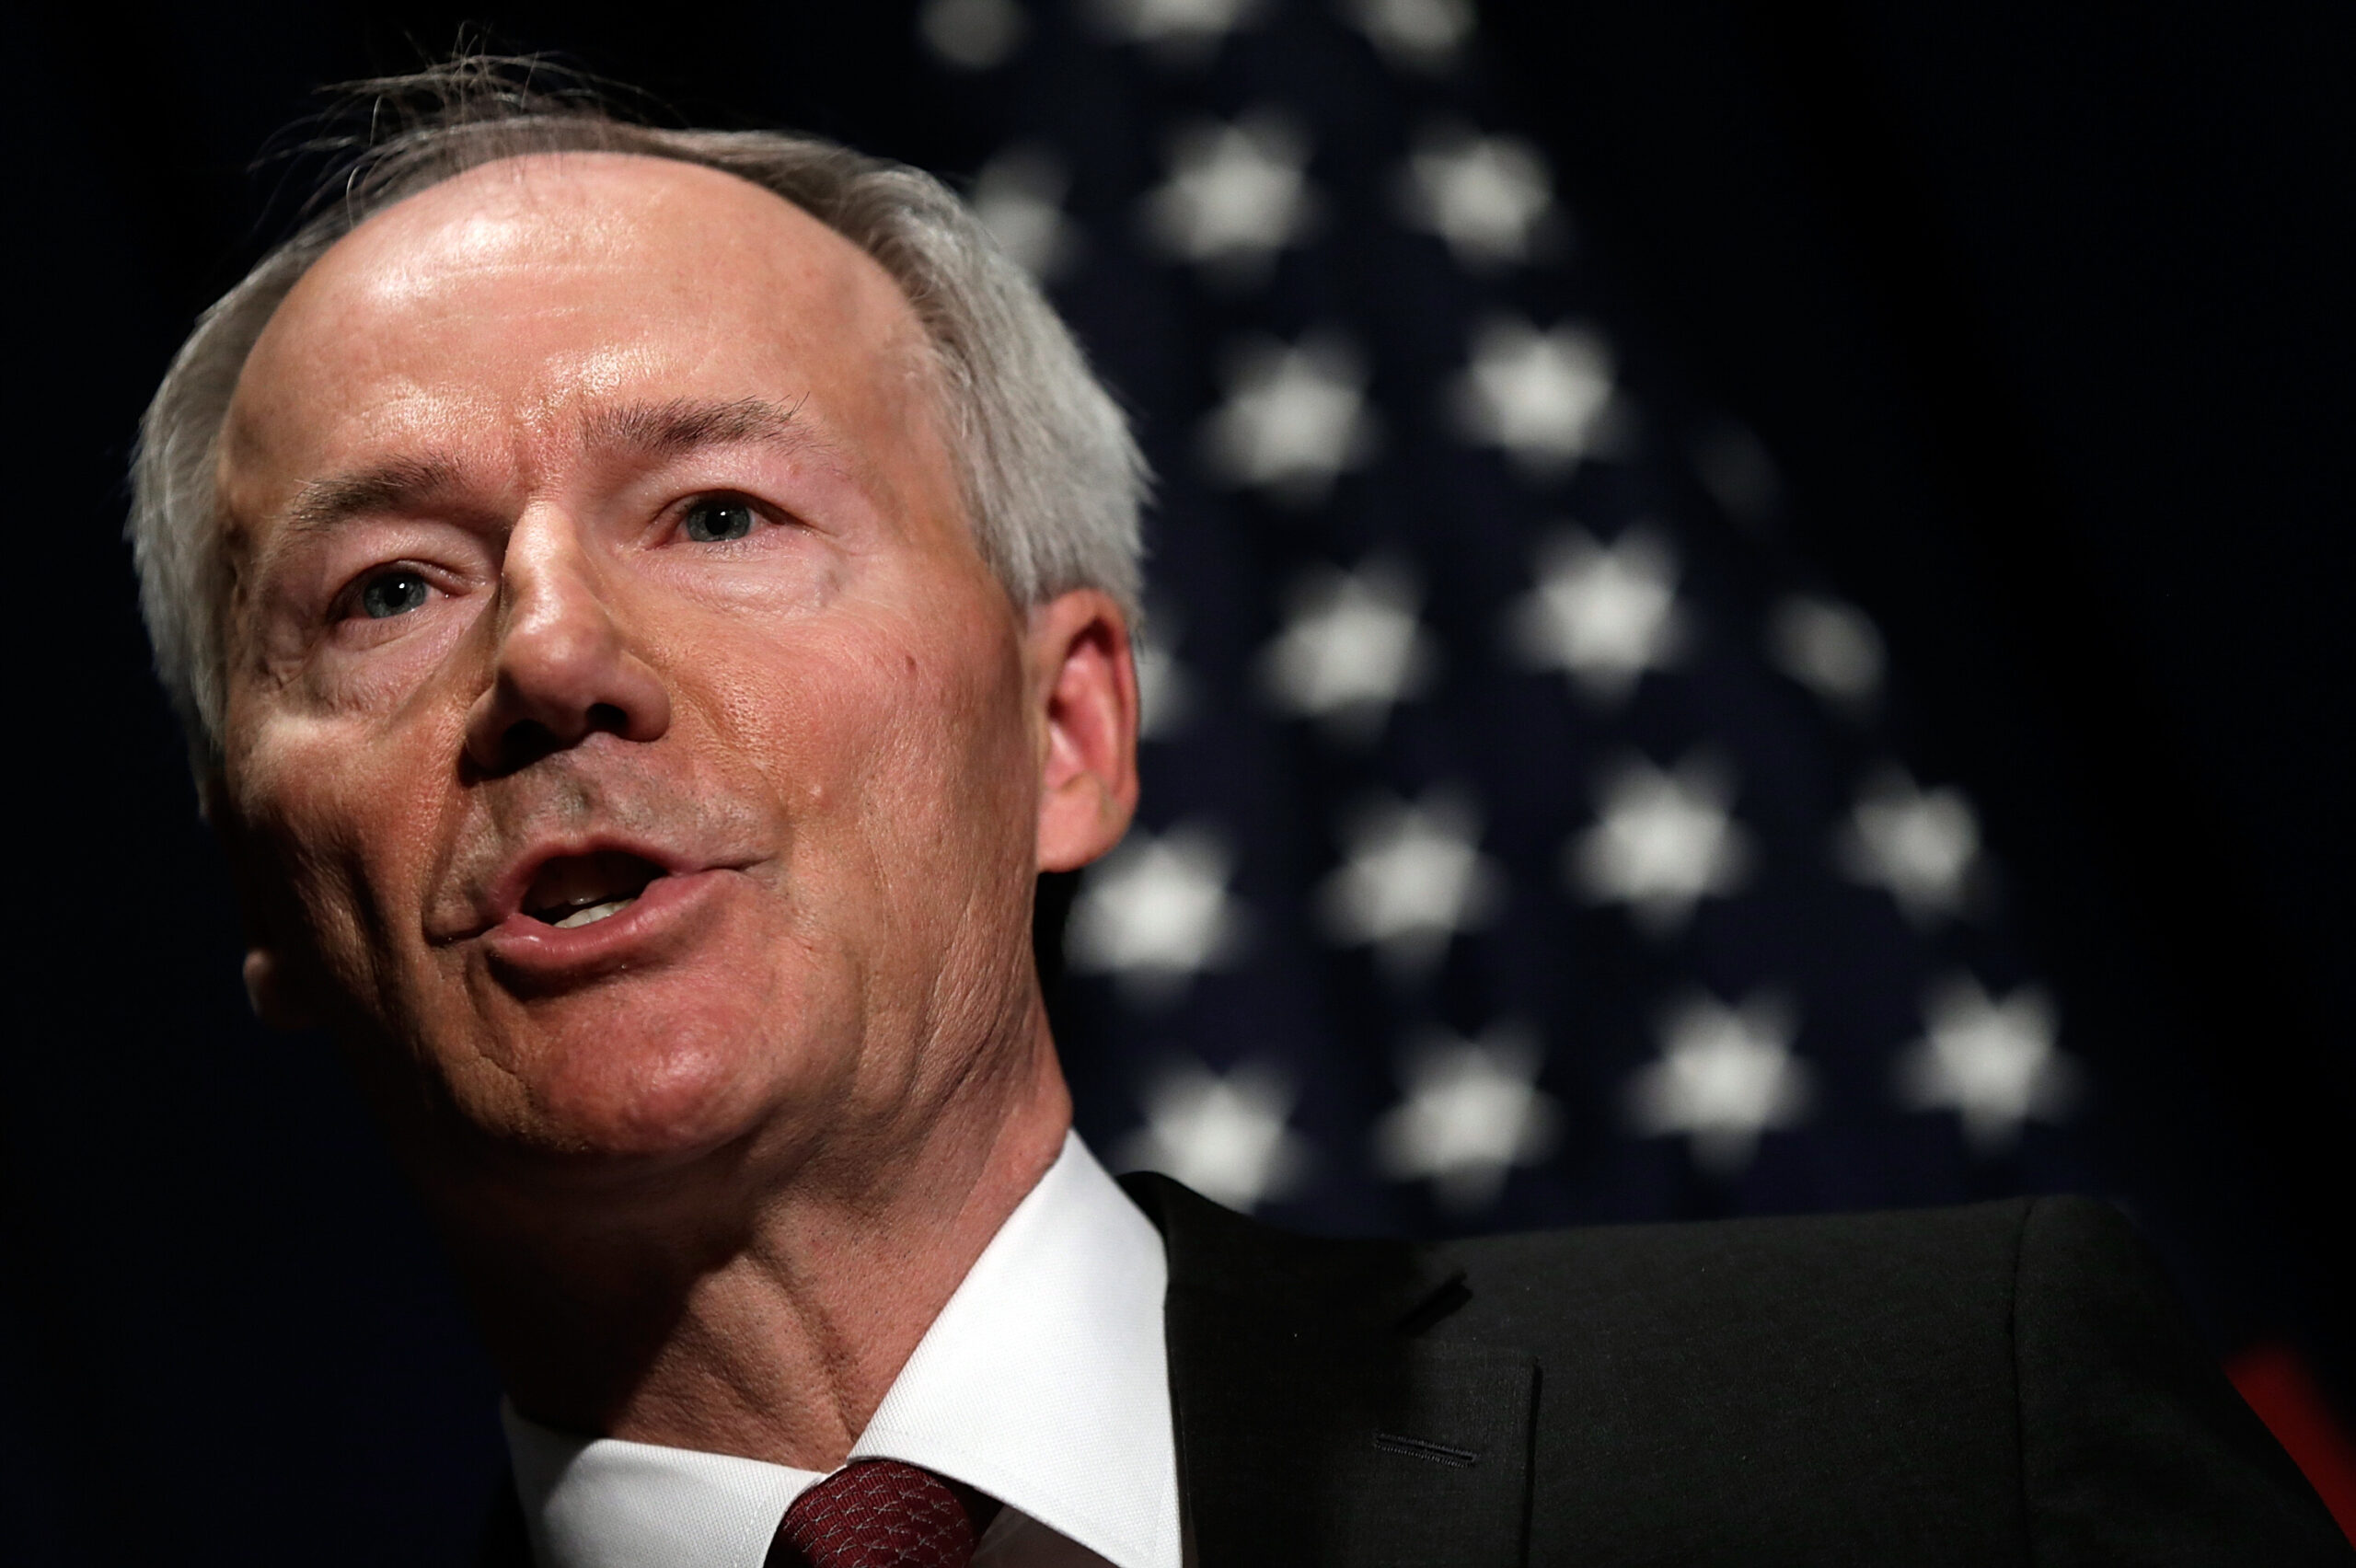 <i>Win McNamee/Getty</i><br/>Arkansas Republican Gov. Asa Hutchinson said August 4 he regrets approving a statewide ban on face mask mandates earlier this year and has called the state Legislature into a special session in an effort to amend the law.